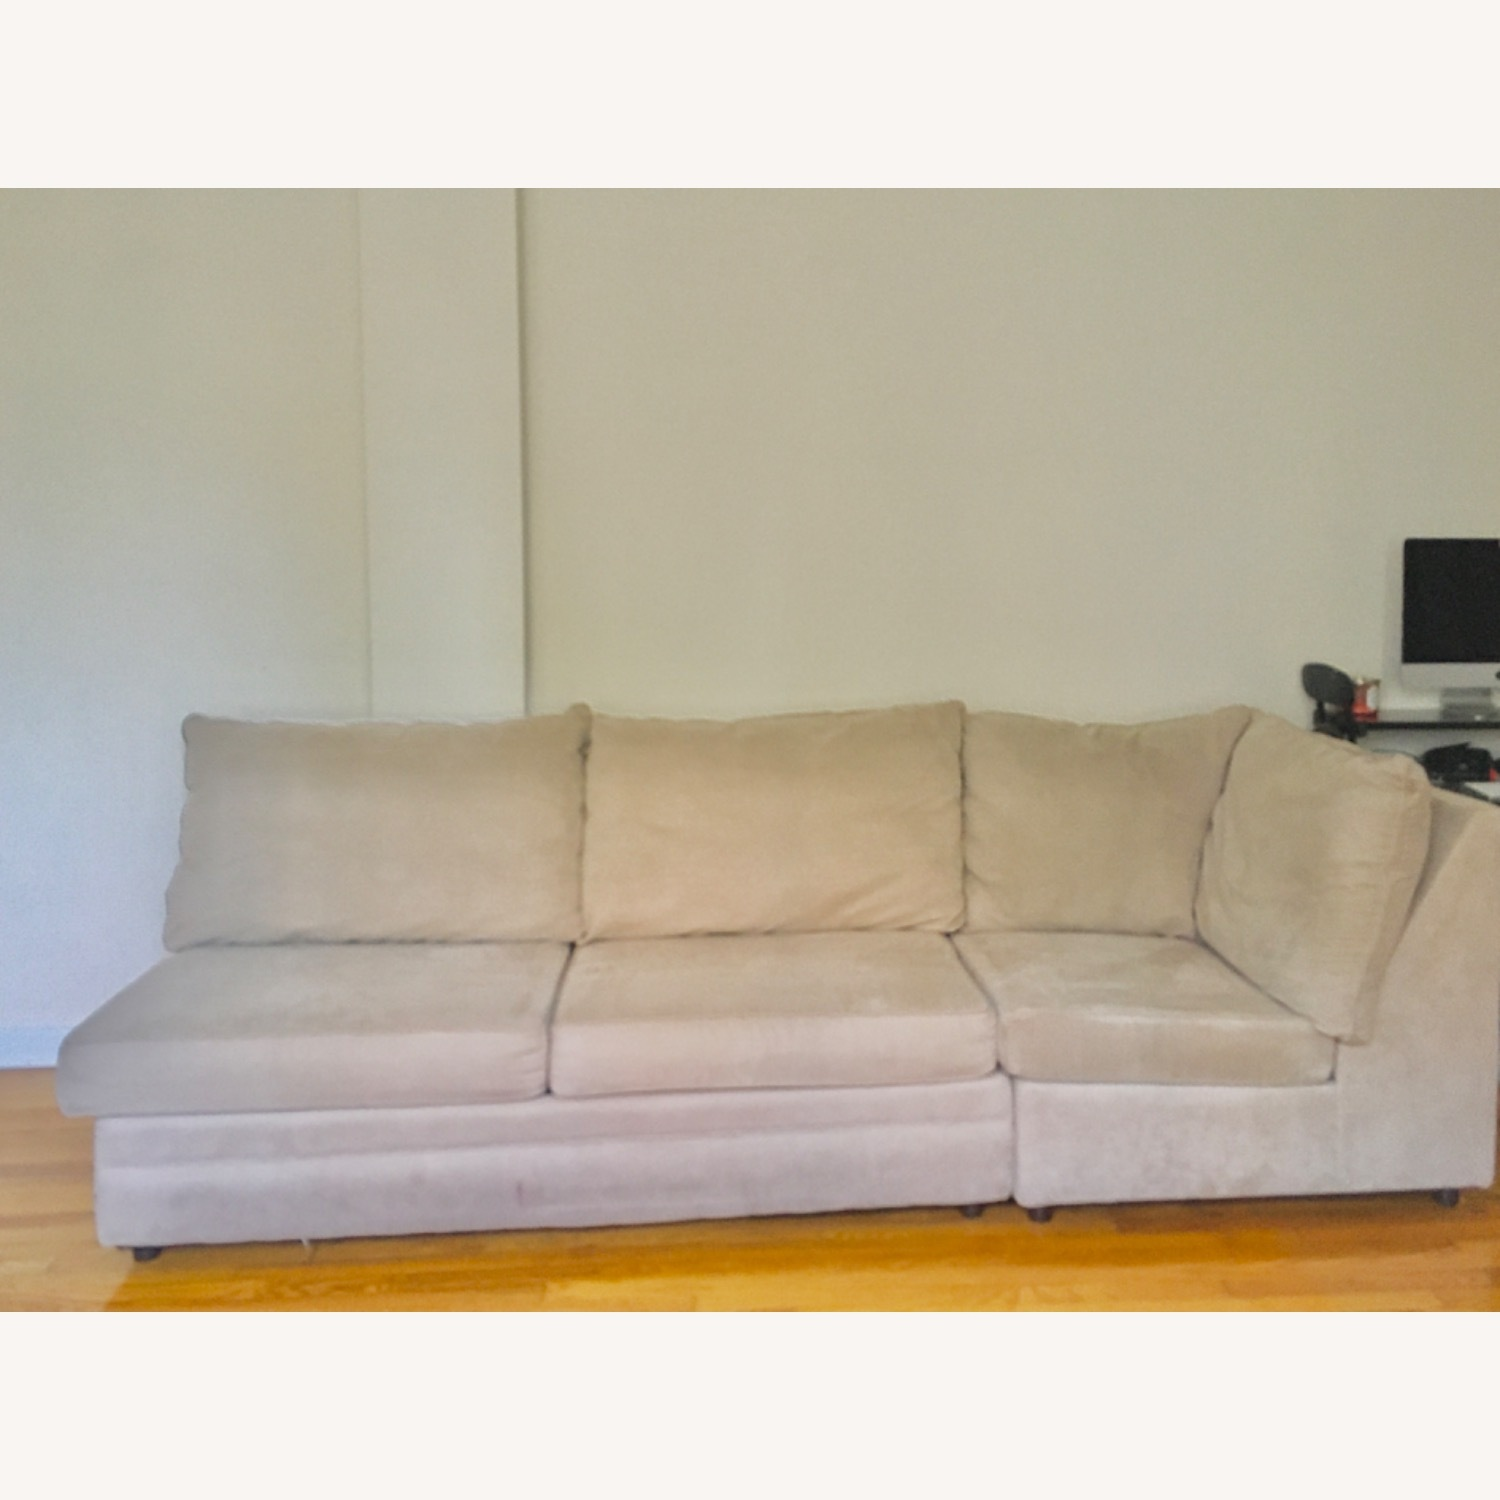 Bob's Discount Grey Two Piece Sofa - image-3